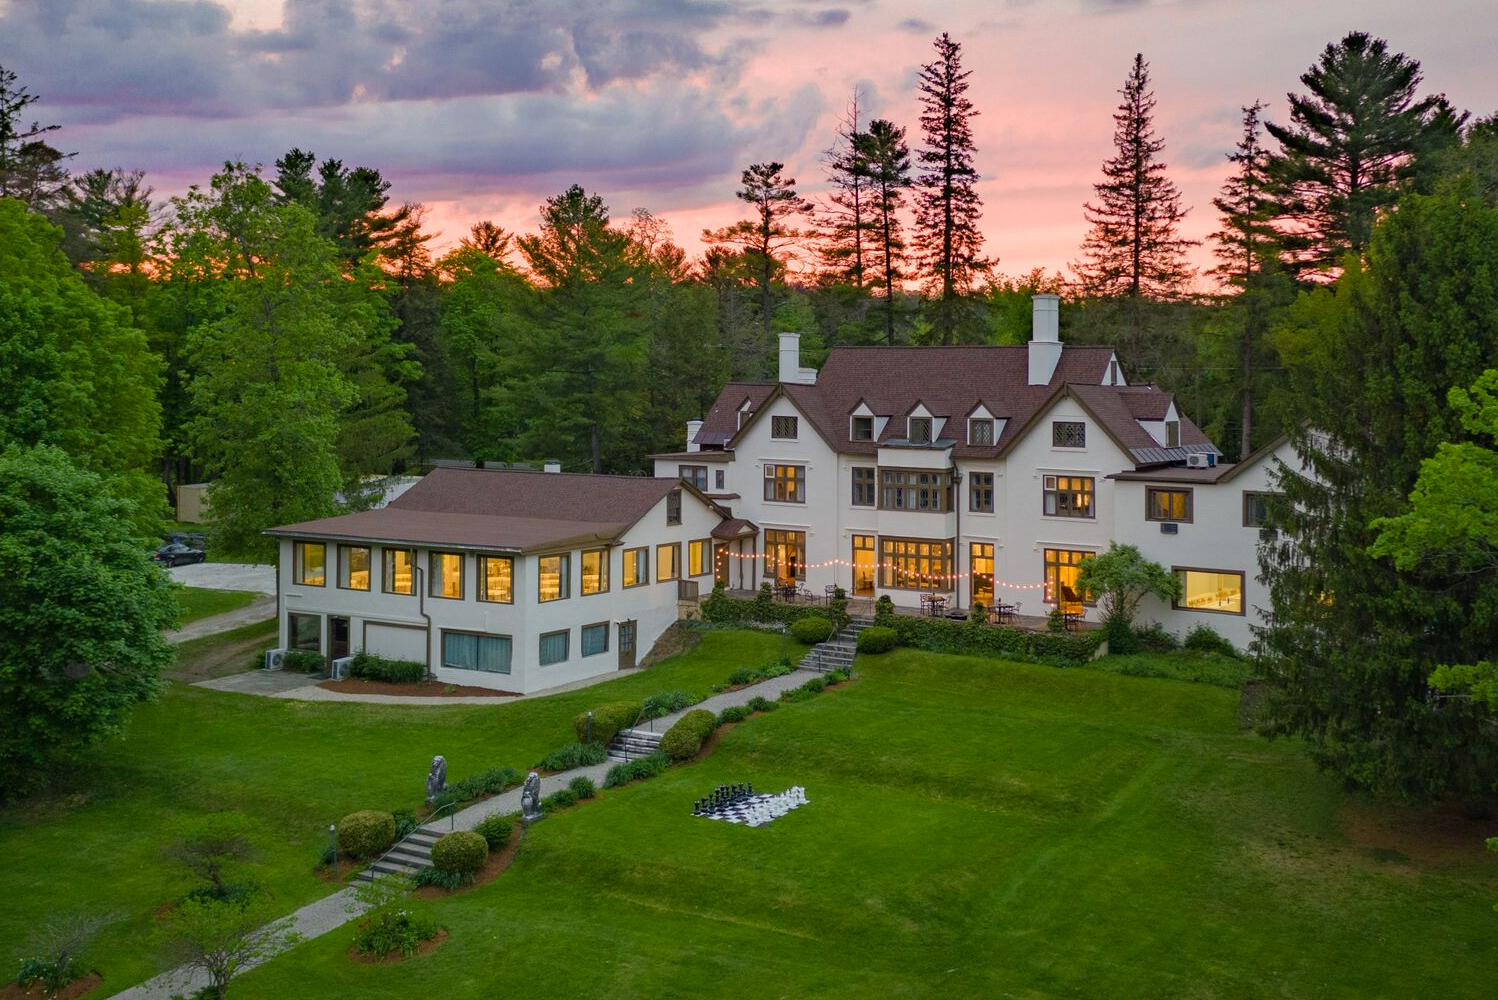 On the heels of its transformation from an inn to a 57-room boutique hotel, The Berkshires' Seven Hills unveiled new event spaces and services for group meetings in Lenox.